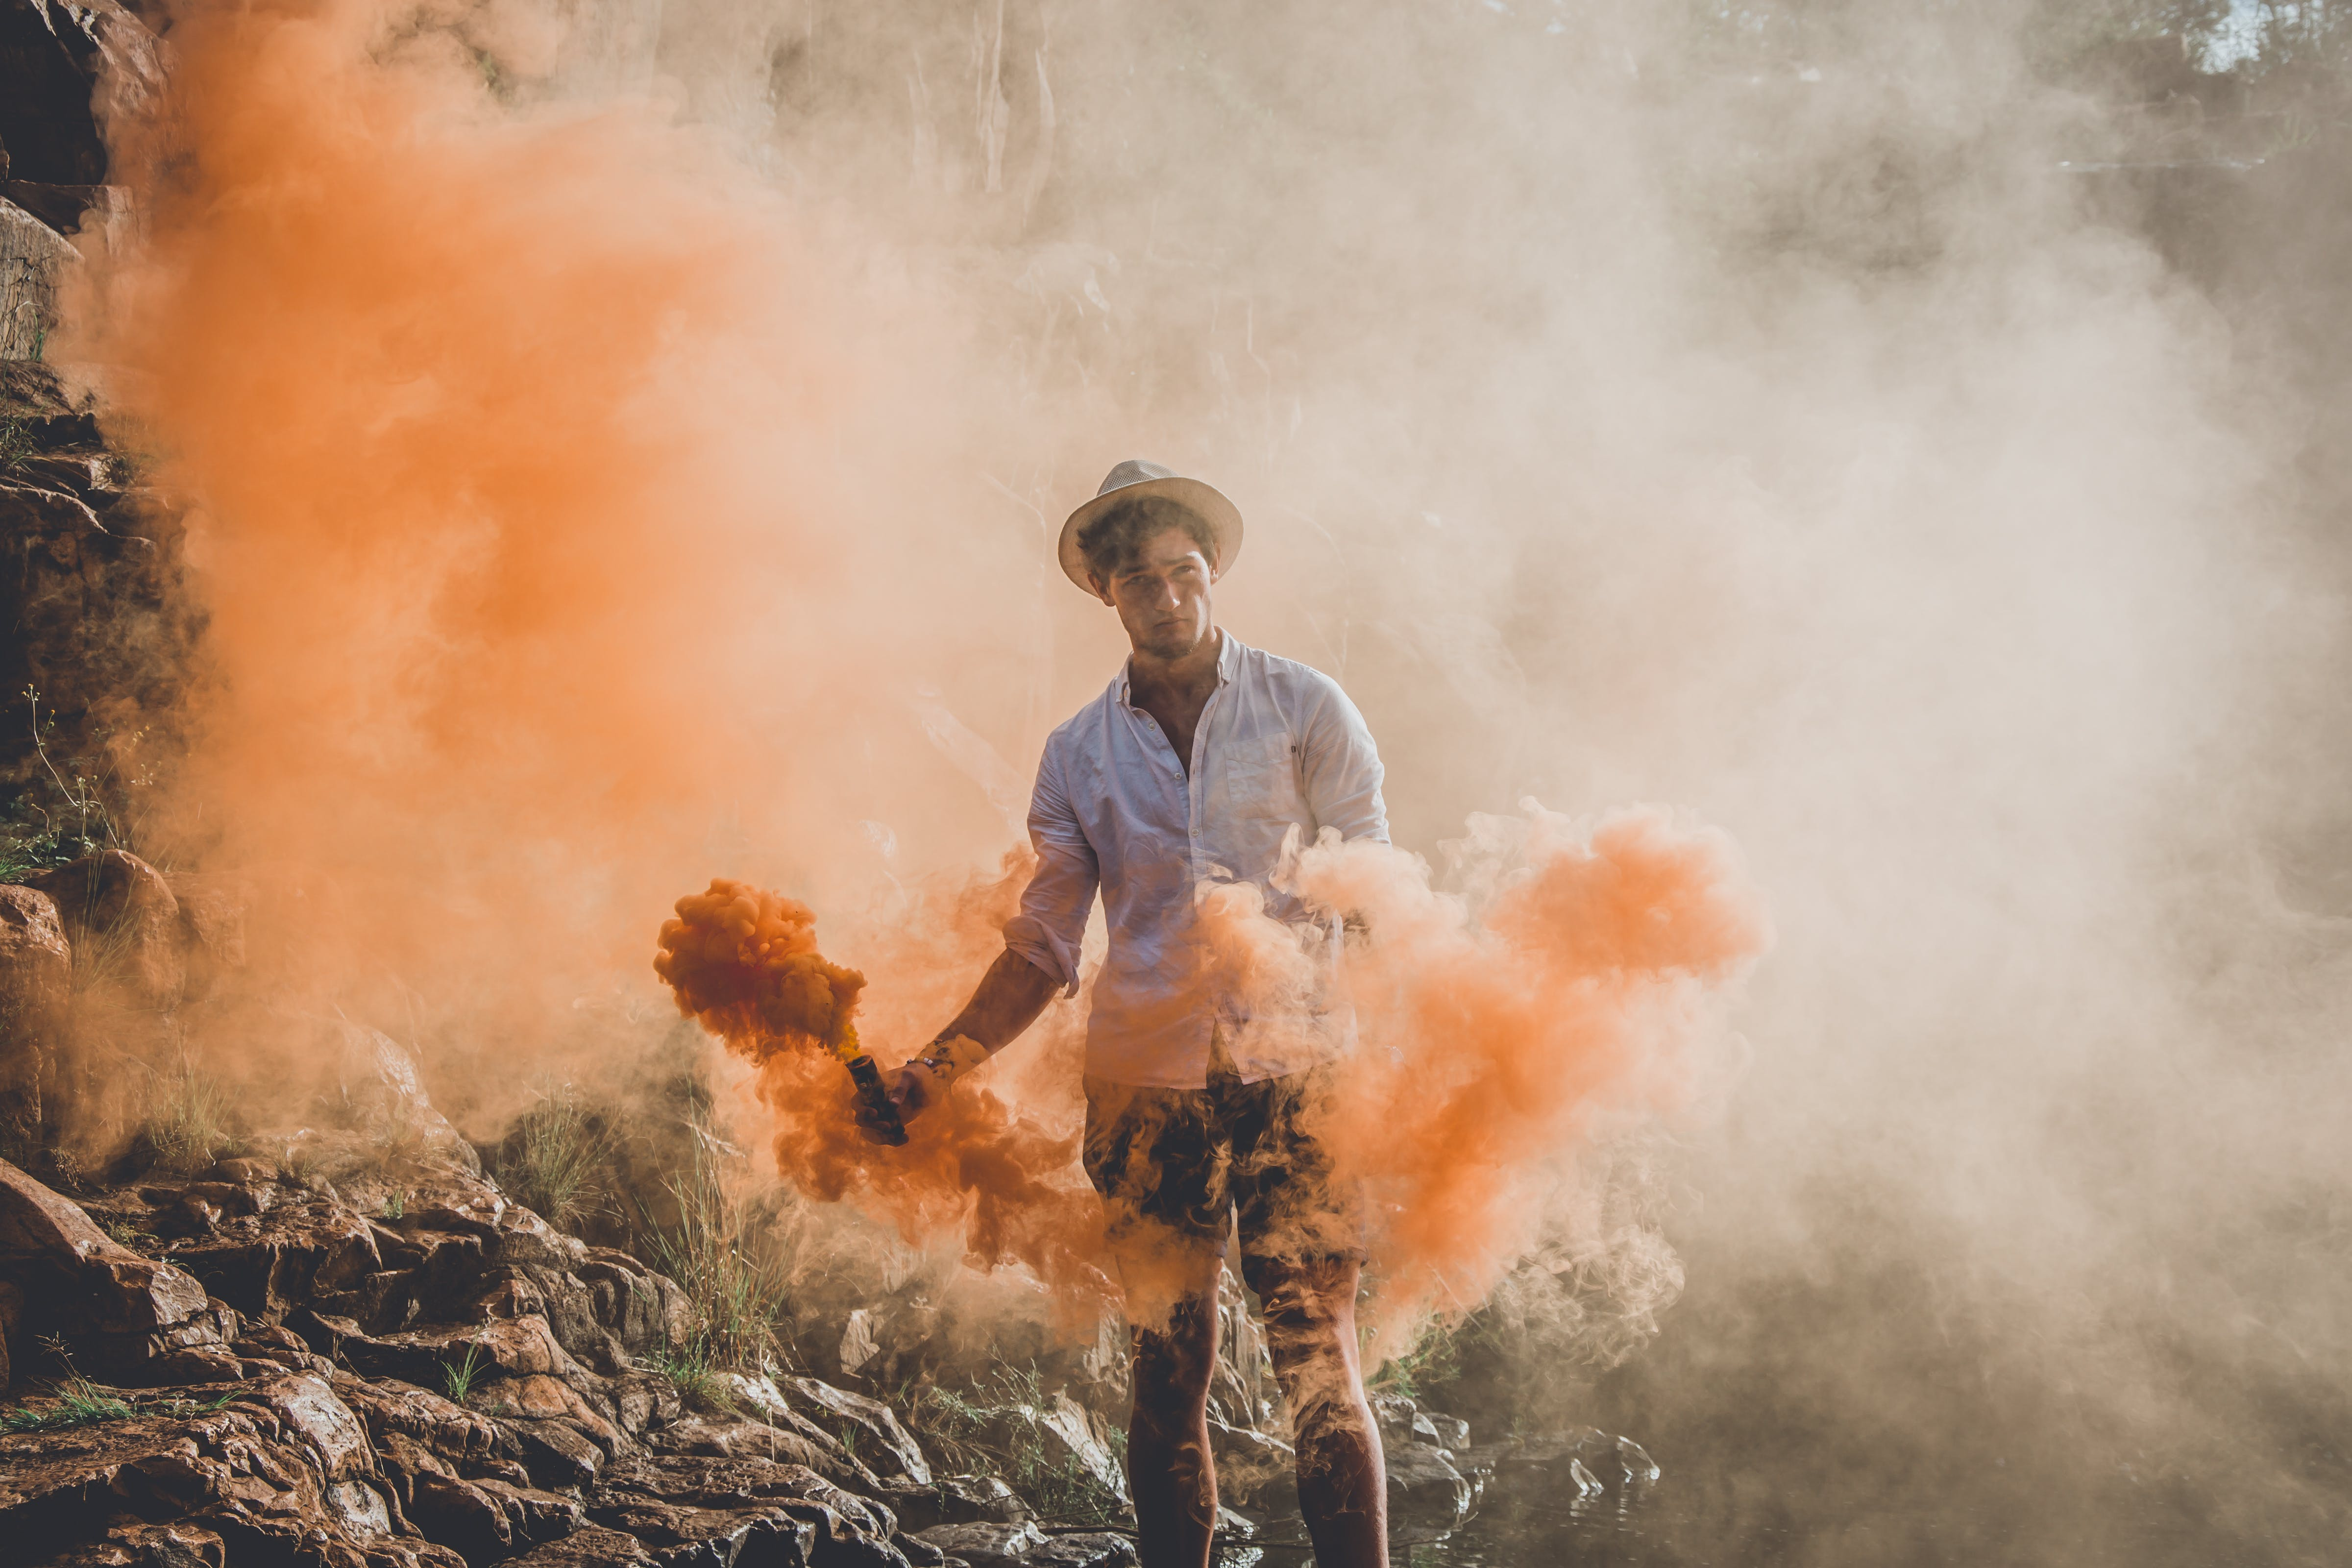 Man Standing While Holding Smoke Grenades